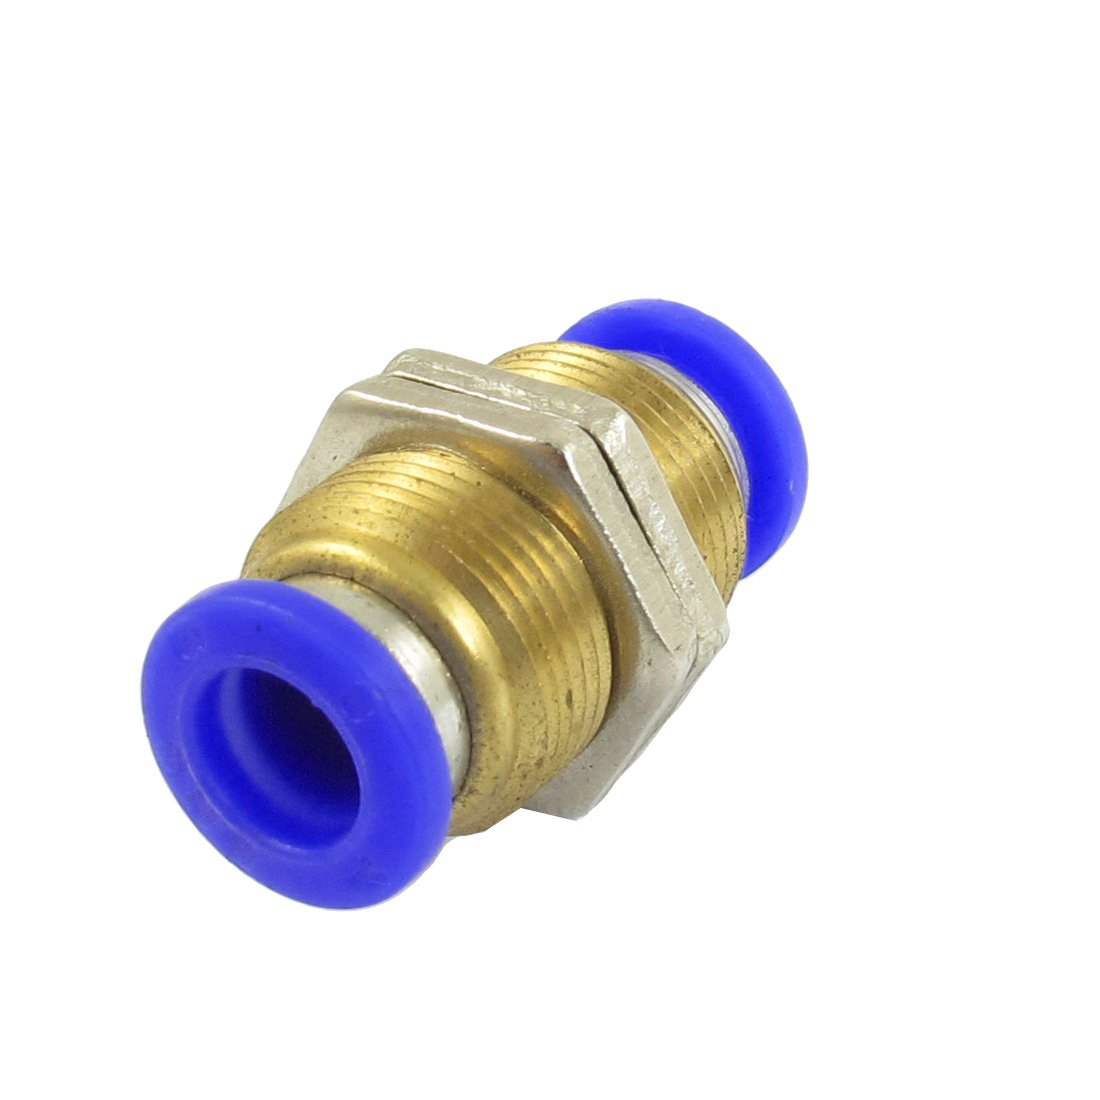 Industry 3/8 PT Male Thread Full Port Quick Couplers for 8mm OD Hose внешний аккумулятор для портативных устройств gp portable powerbank 1c05awe gp1c05awe 2crfb1